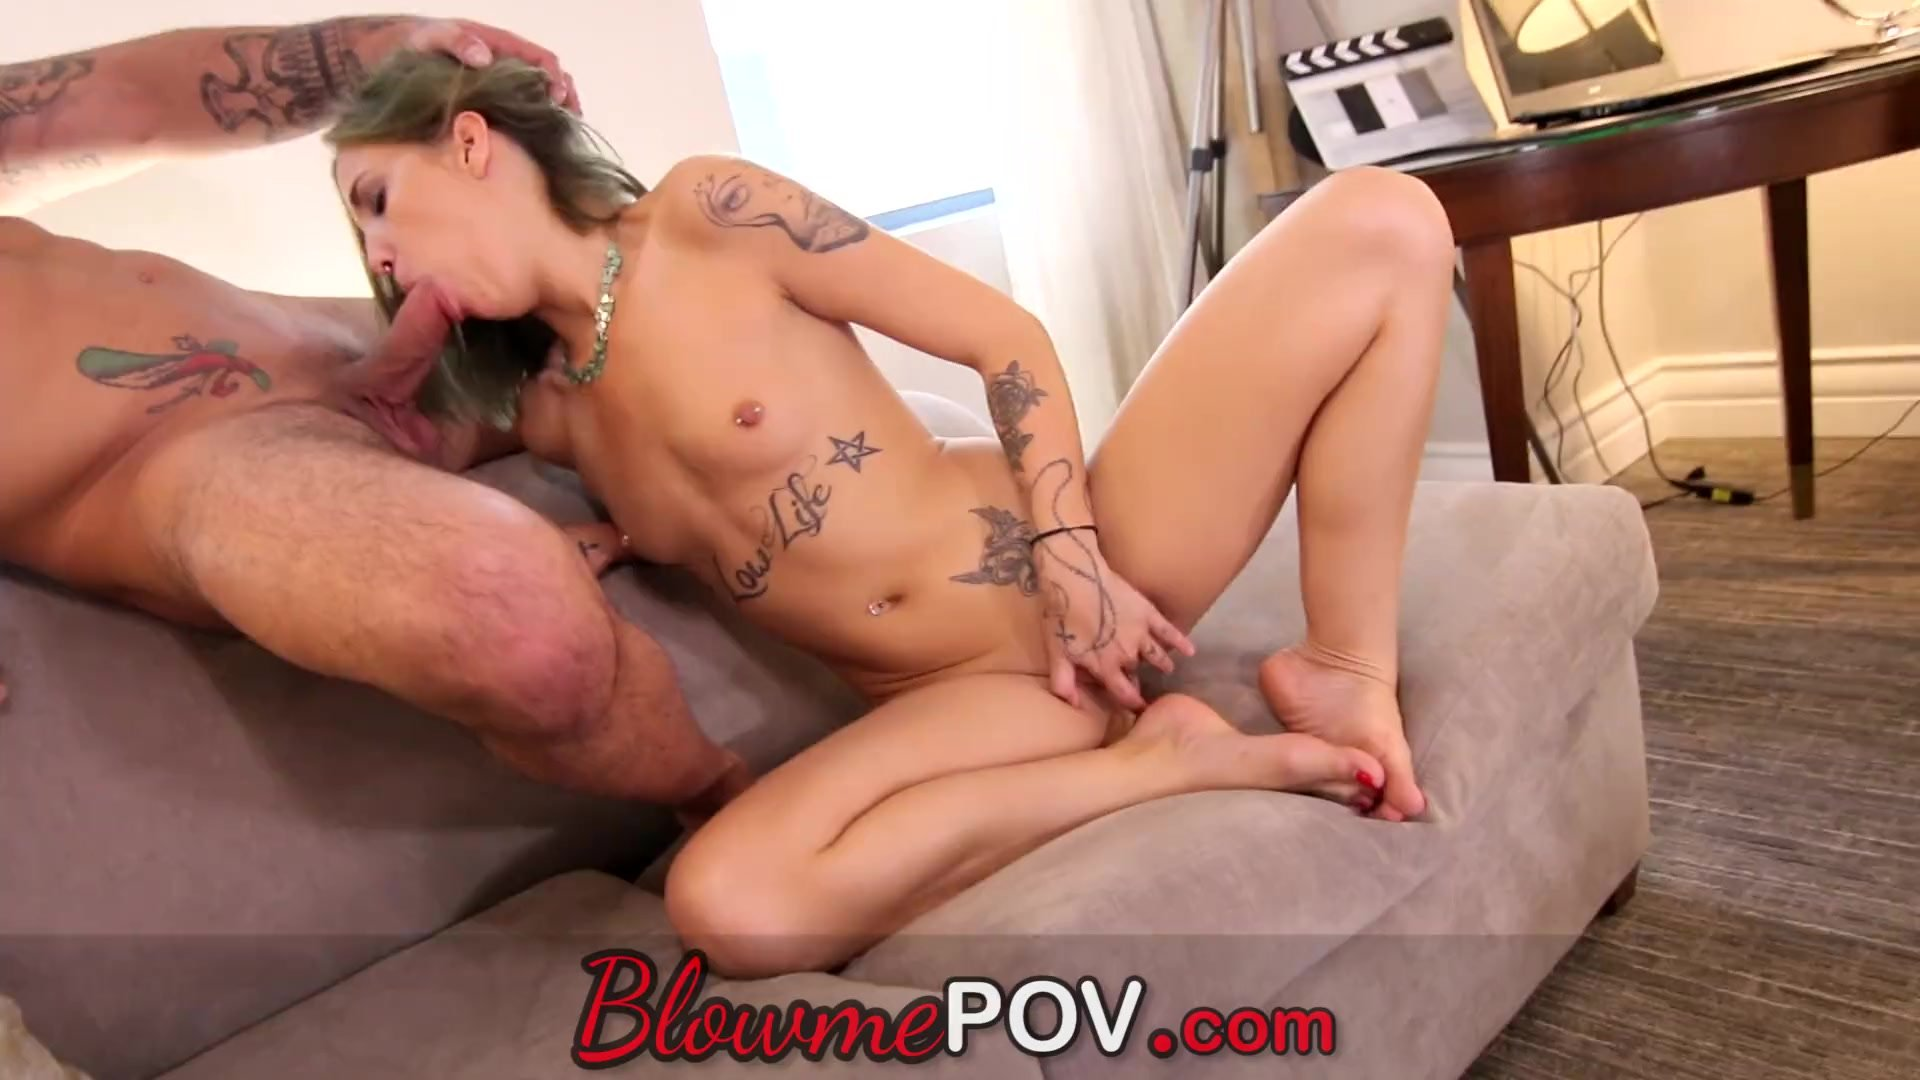 Blow me POV - This Inked Hoe Blows Like a Pro